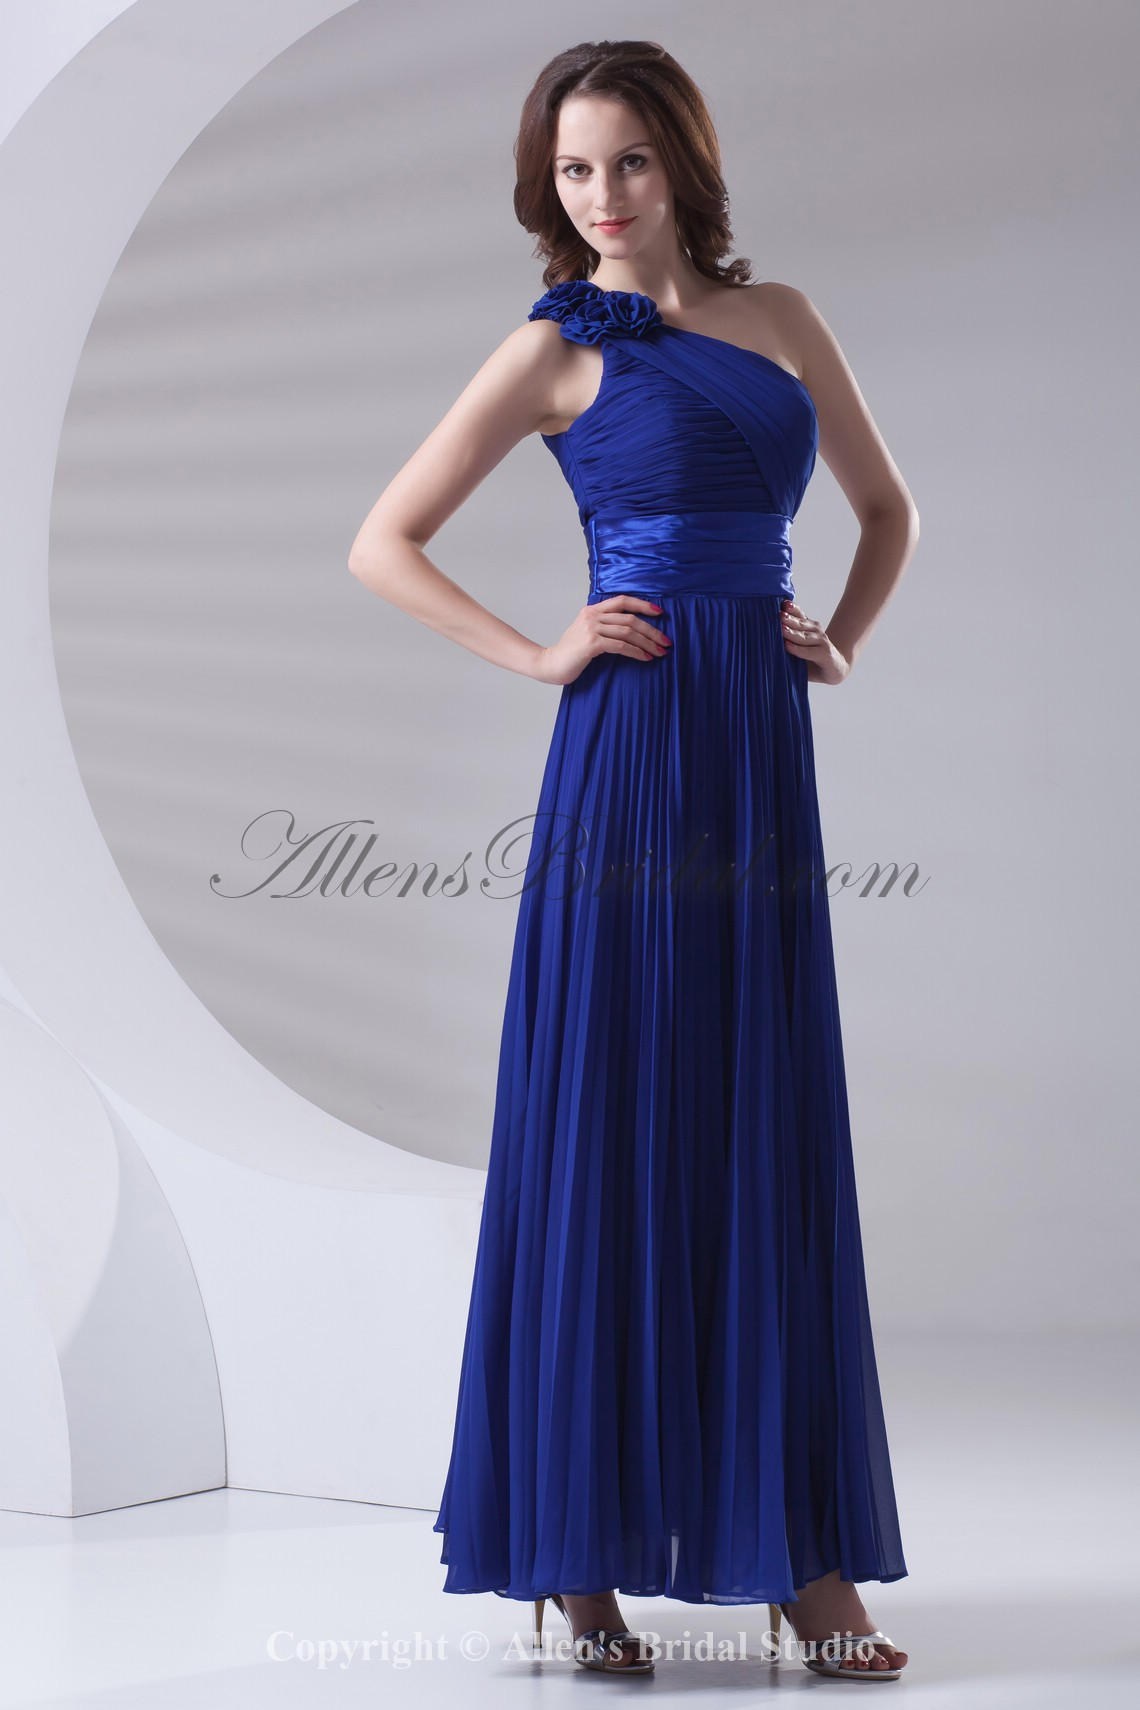 /421-3367/chiffon-asymmetrical-neckline-column-ankle-length-flowers-prom-dress.jpg